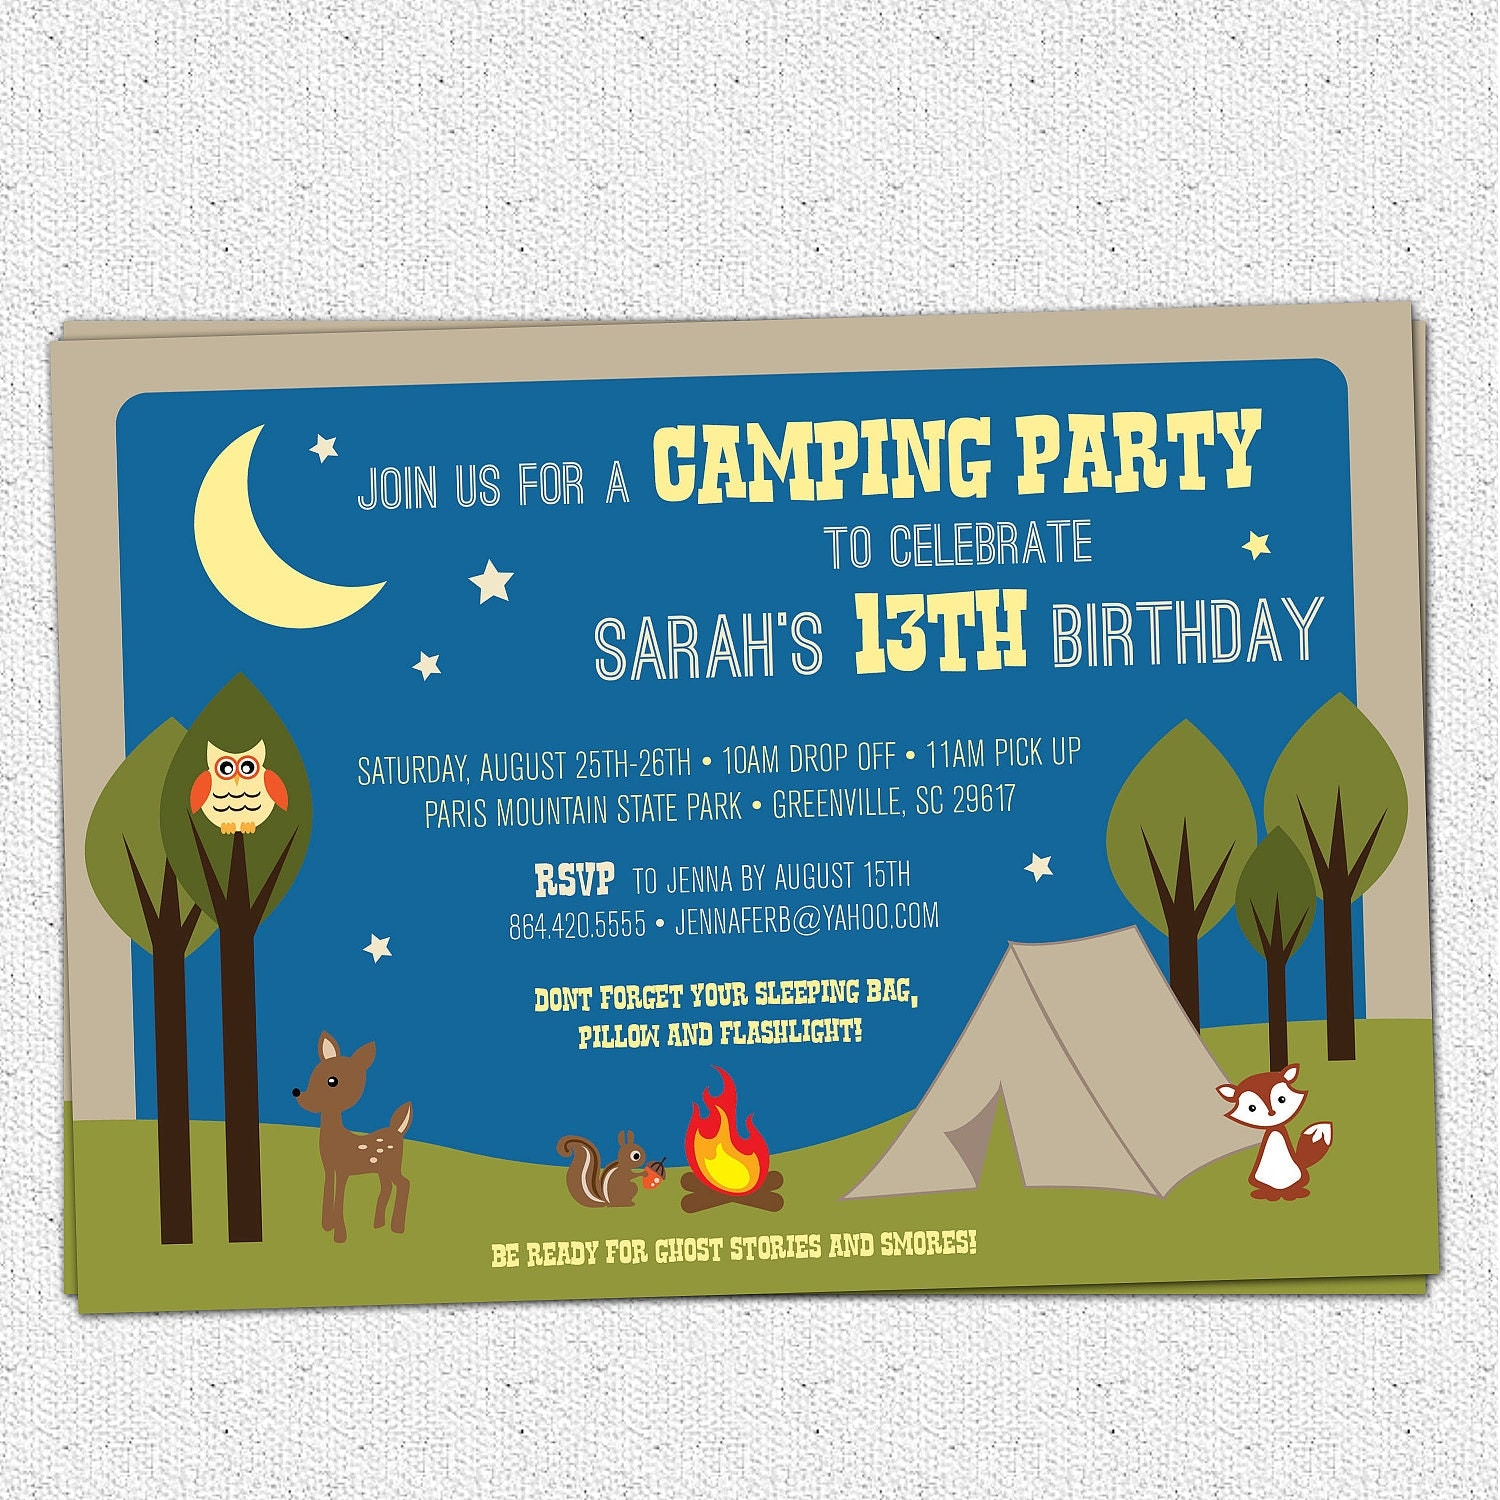 Camping Themed Birthday Party Invitations was good invitation ideas